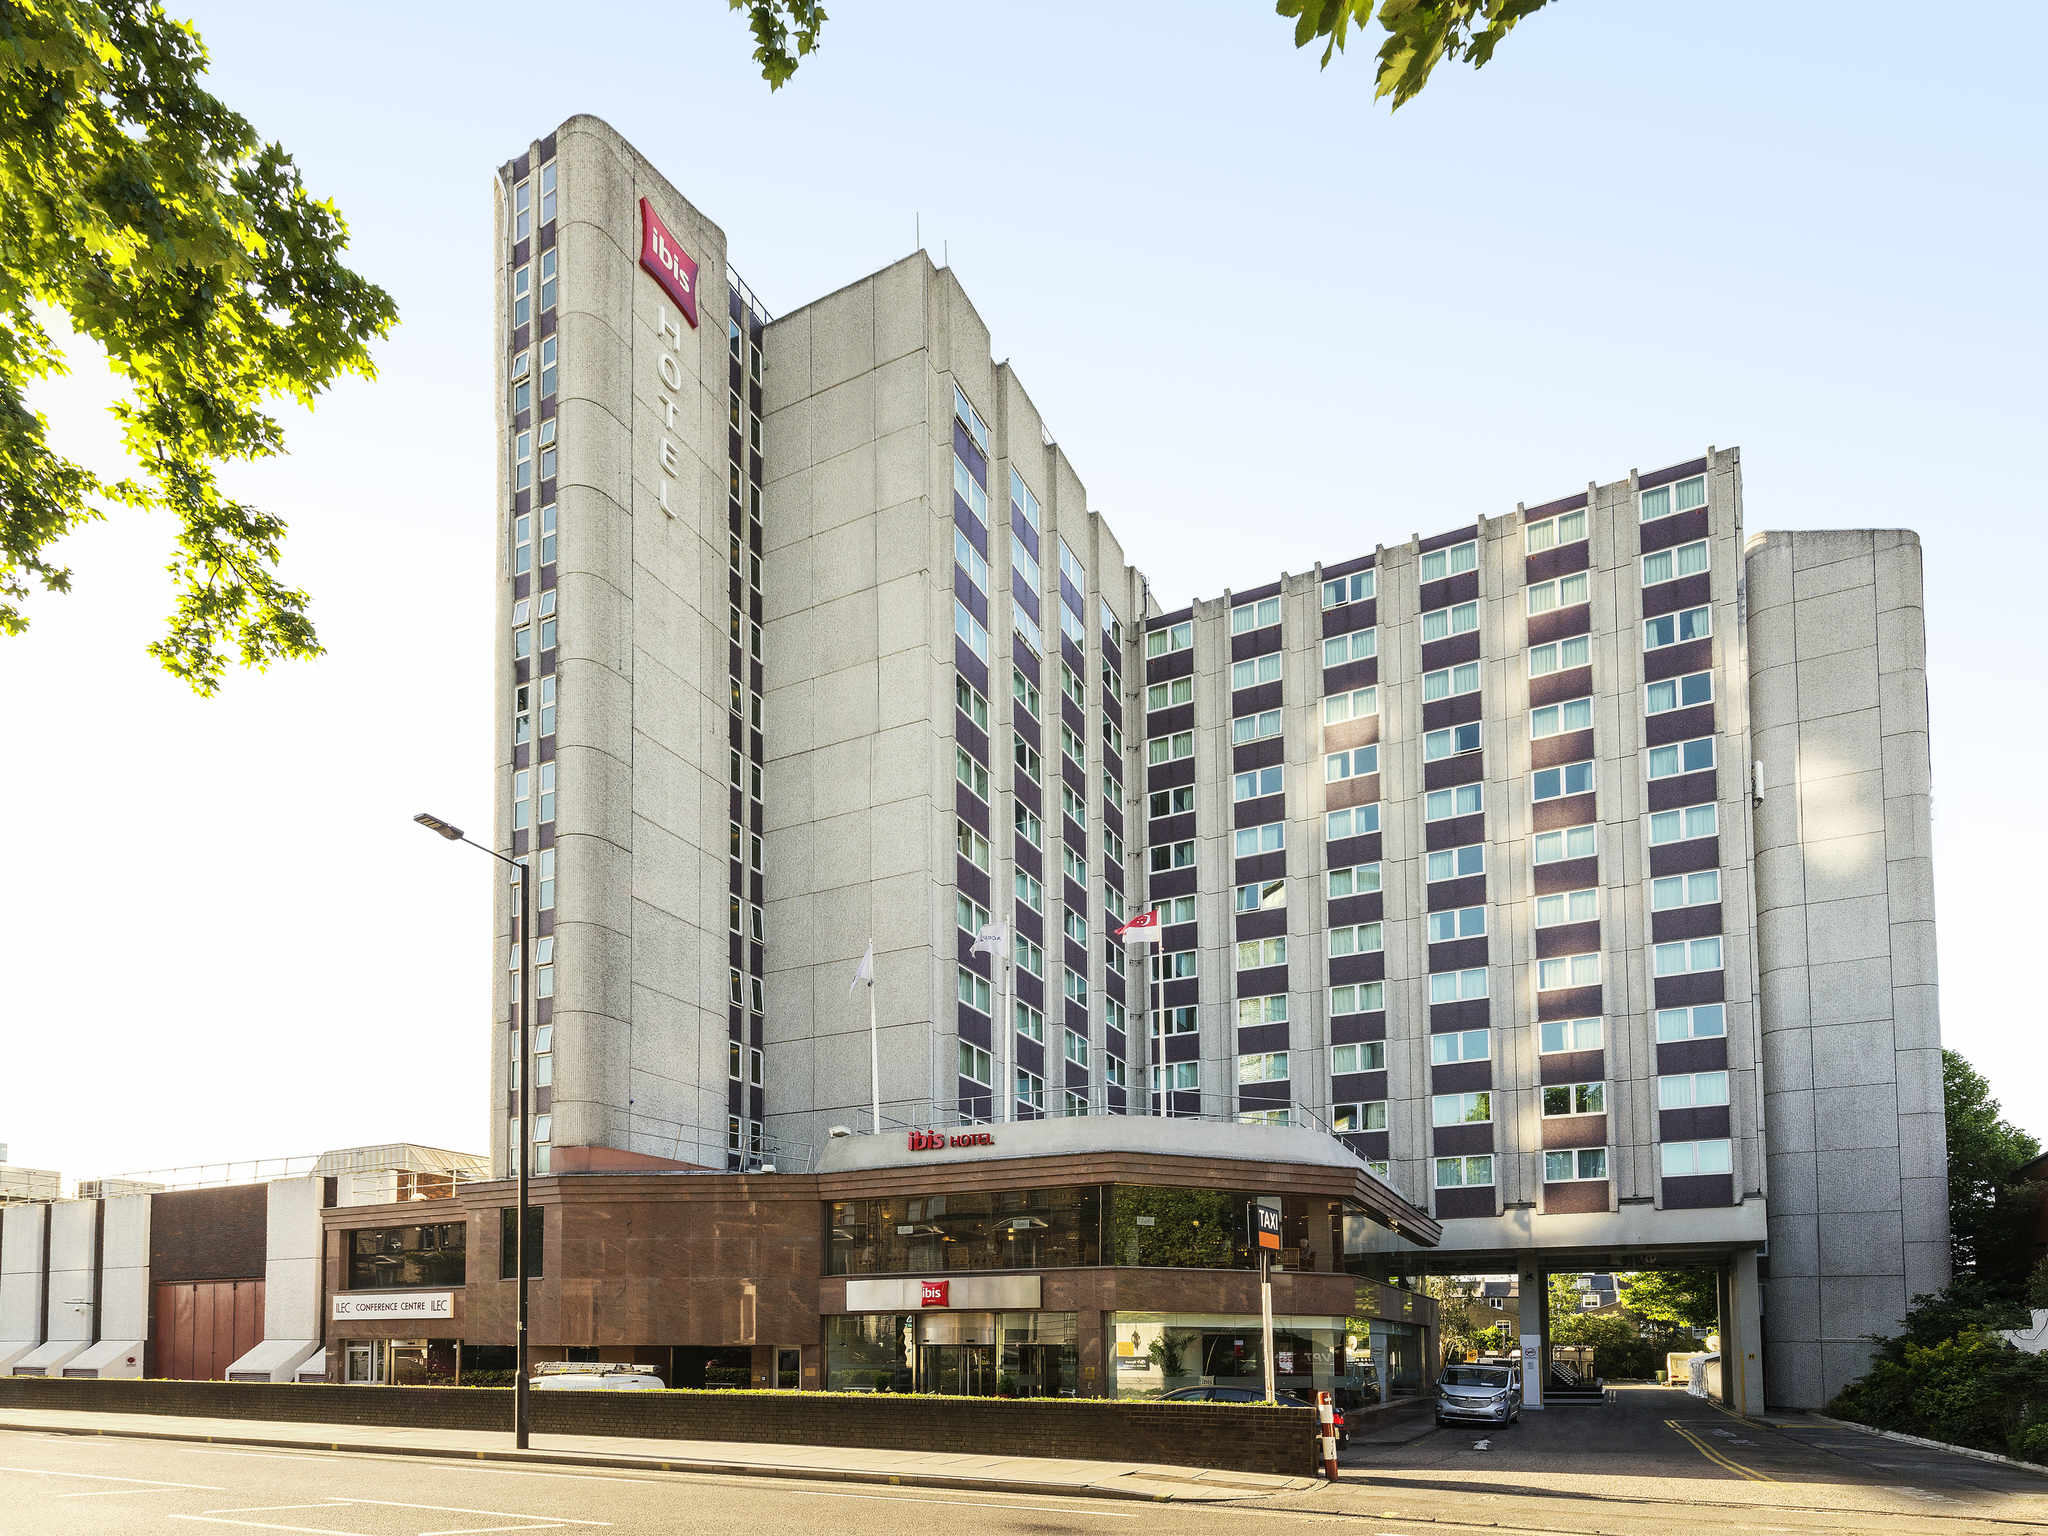 Hotel – ibis Londen Earls Court